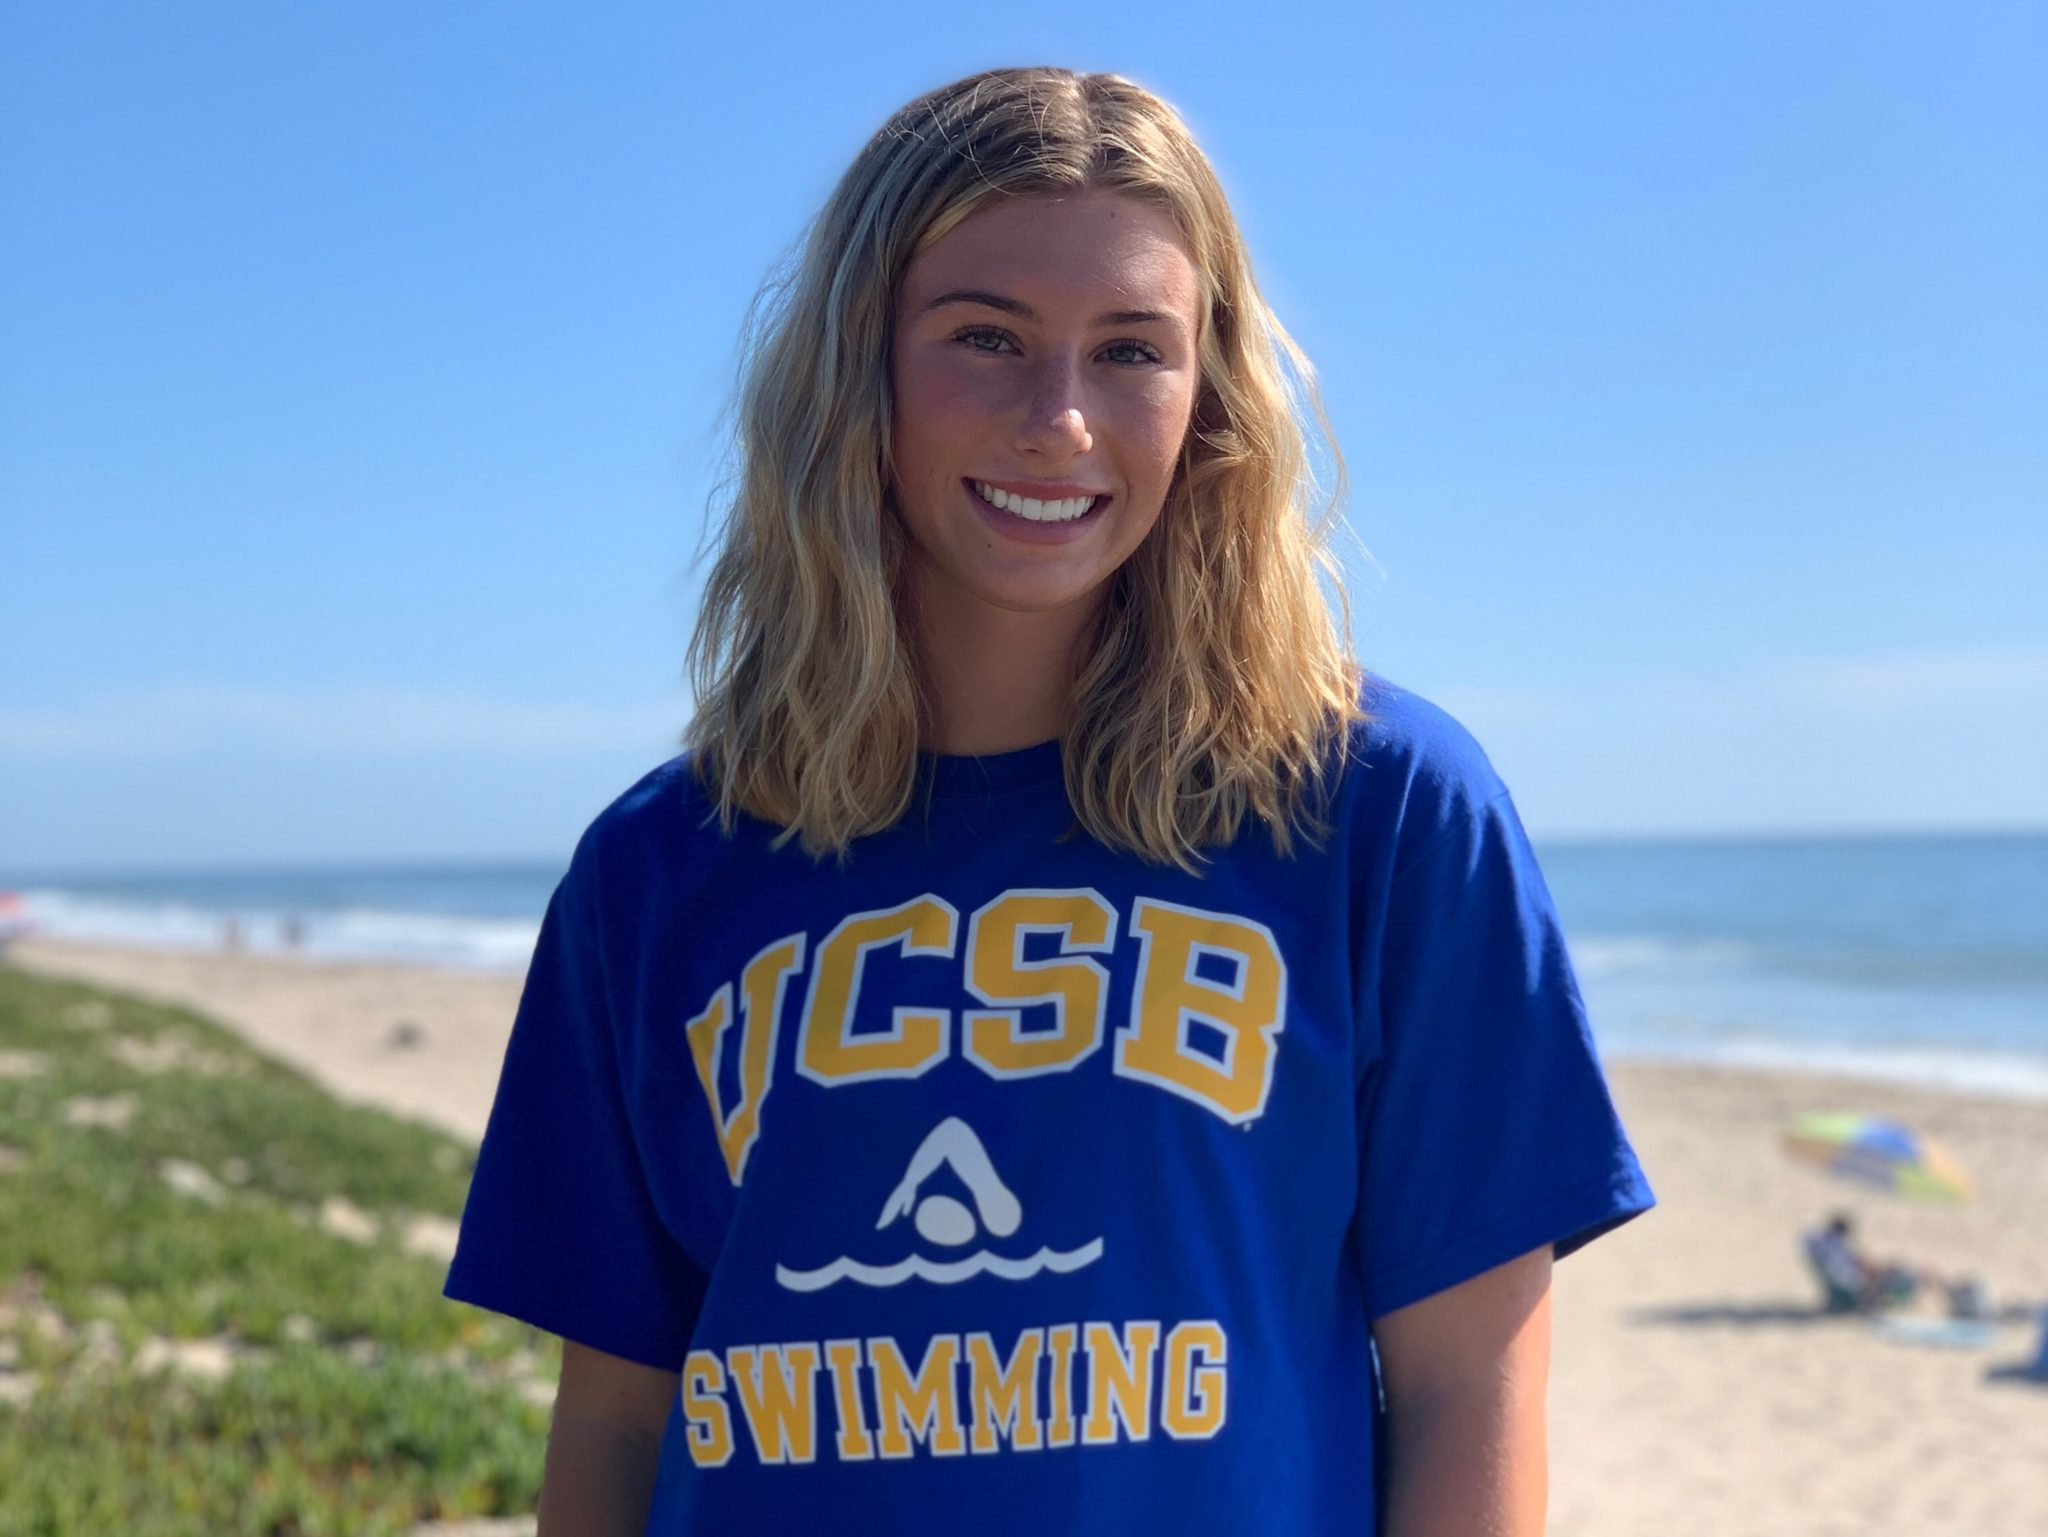 Ucsb Winter 2020.Socal Sprinter Reagan Nibarger Makes Verbal Pledge To Ucsb